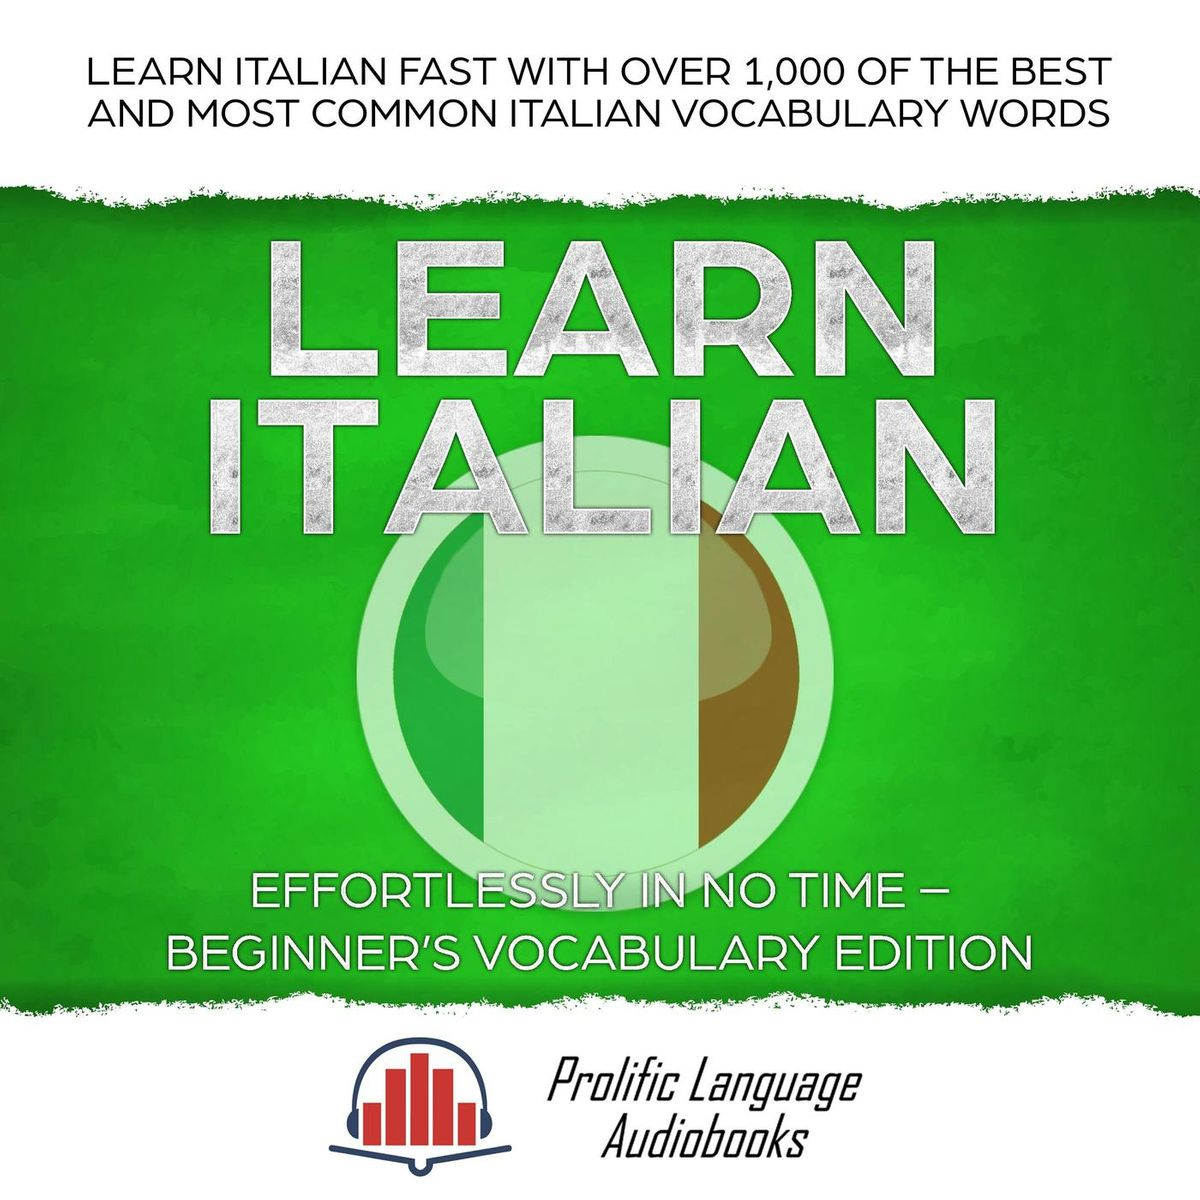 Learn Italian Effortlessly in No Time – Beginner's Vocabulary Edition: Learn Italian FAST with Over 1,000 of the Best and Most Common Italian Vocabulary Words - eBook